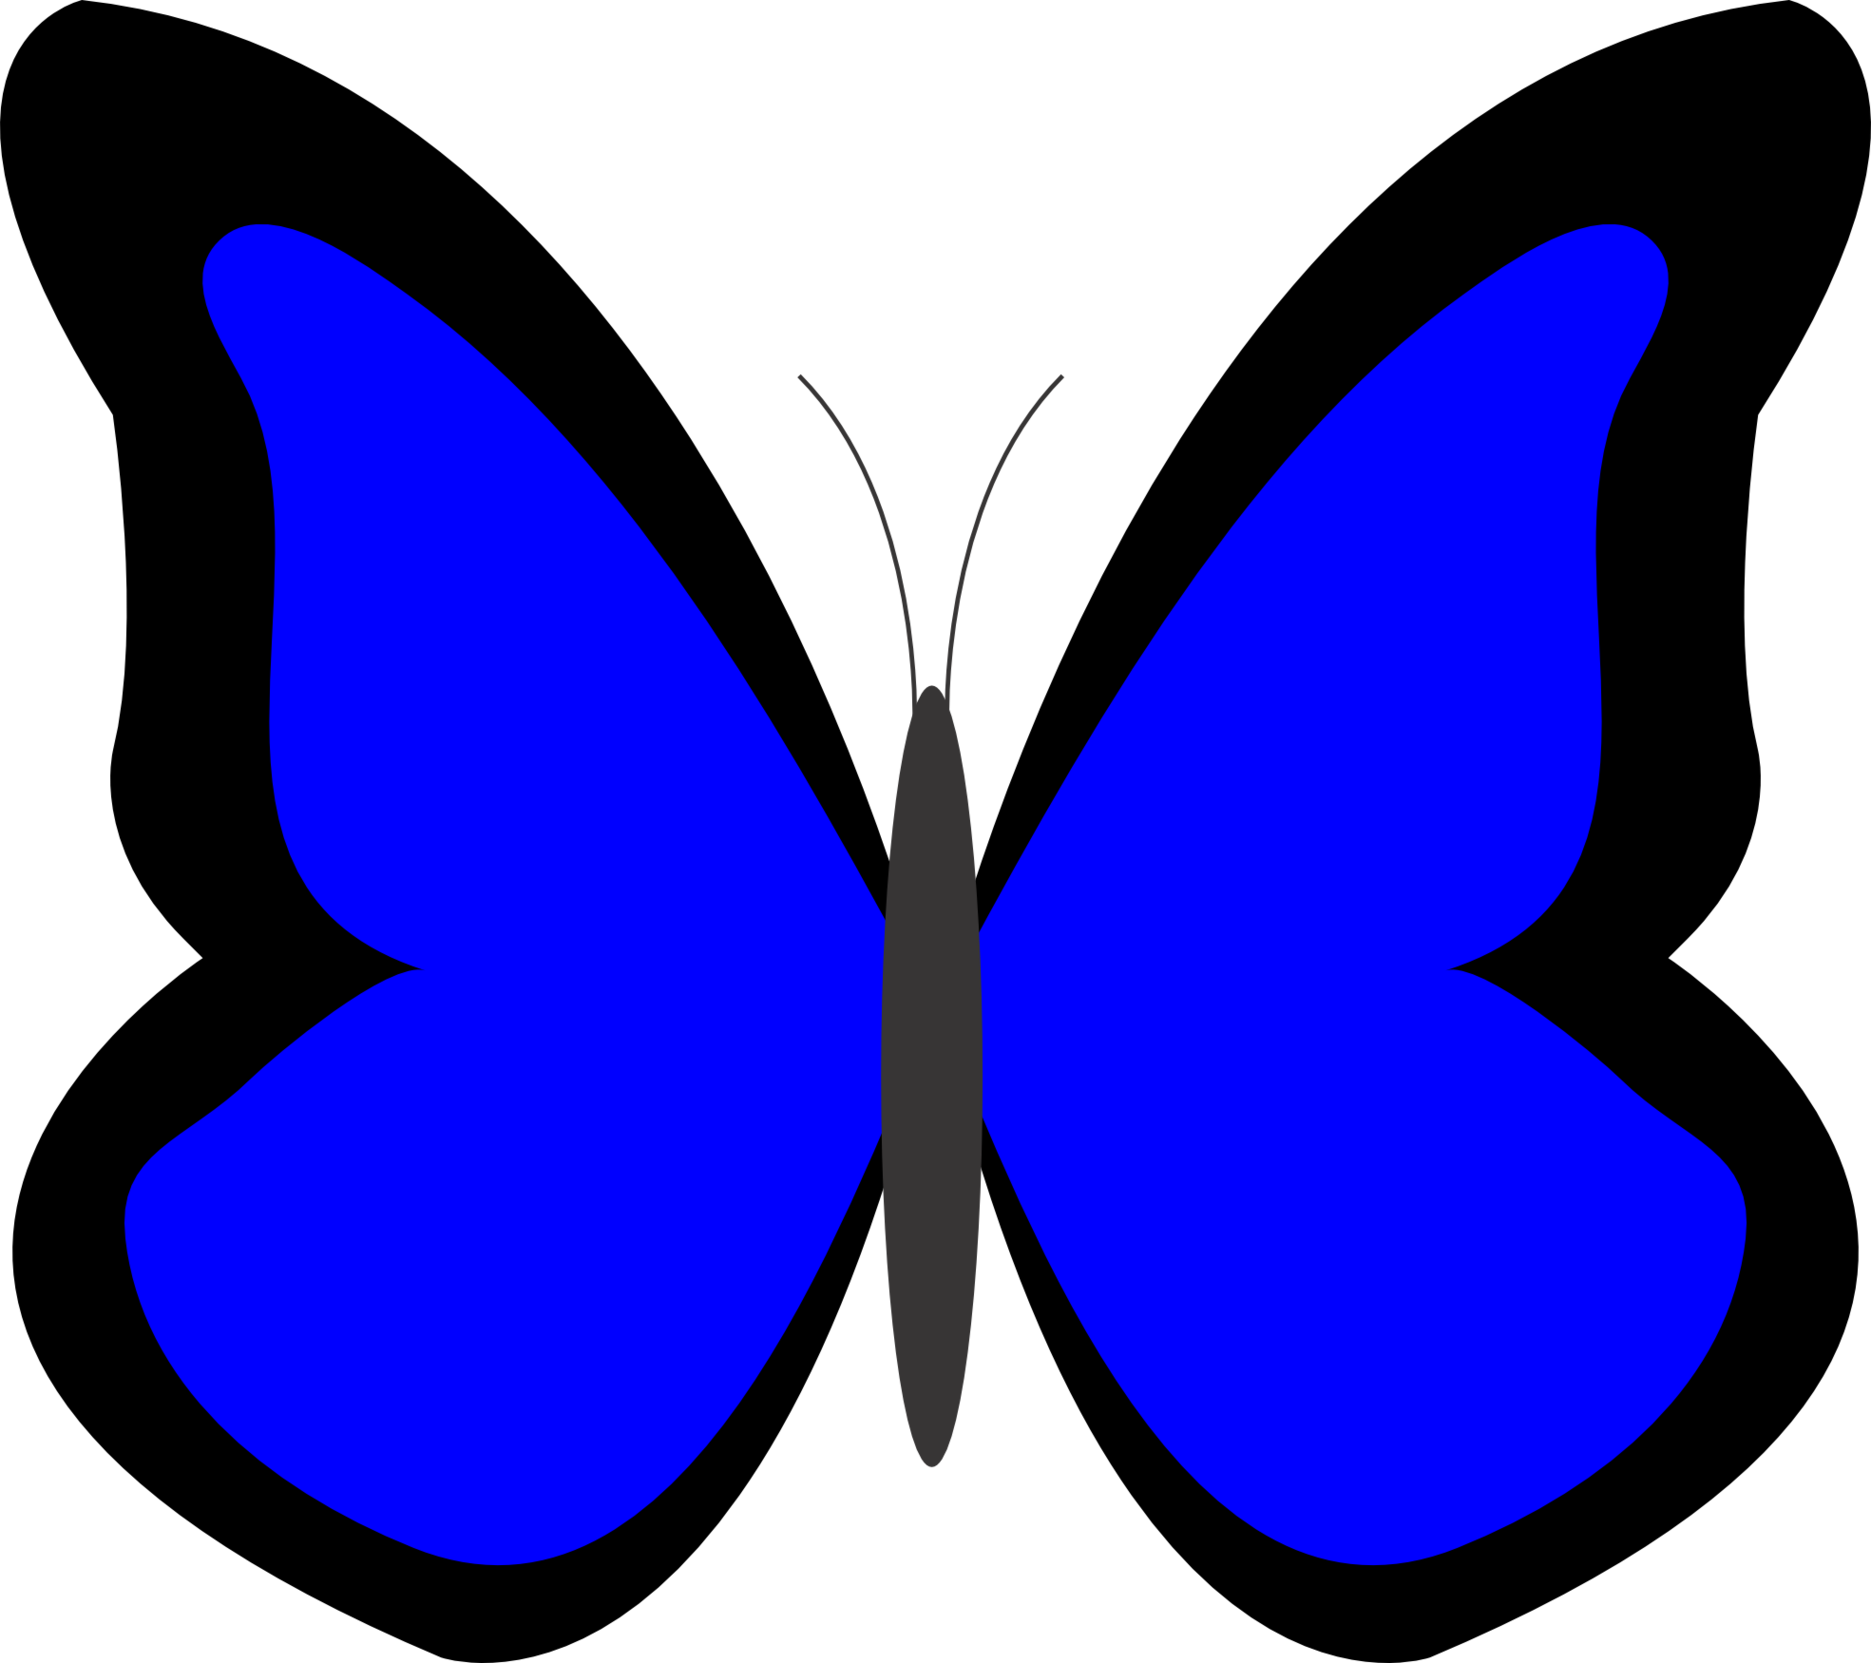 Butterfly clipart clipart clip library library Blue Butterfly Clipart & Blue Butterfly Clip Art Images ... clip library library